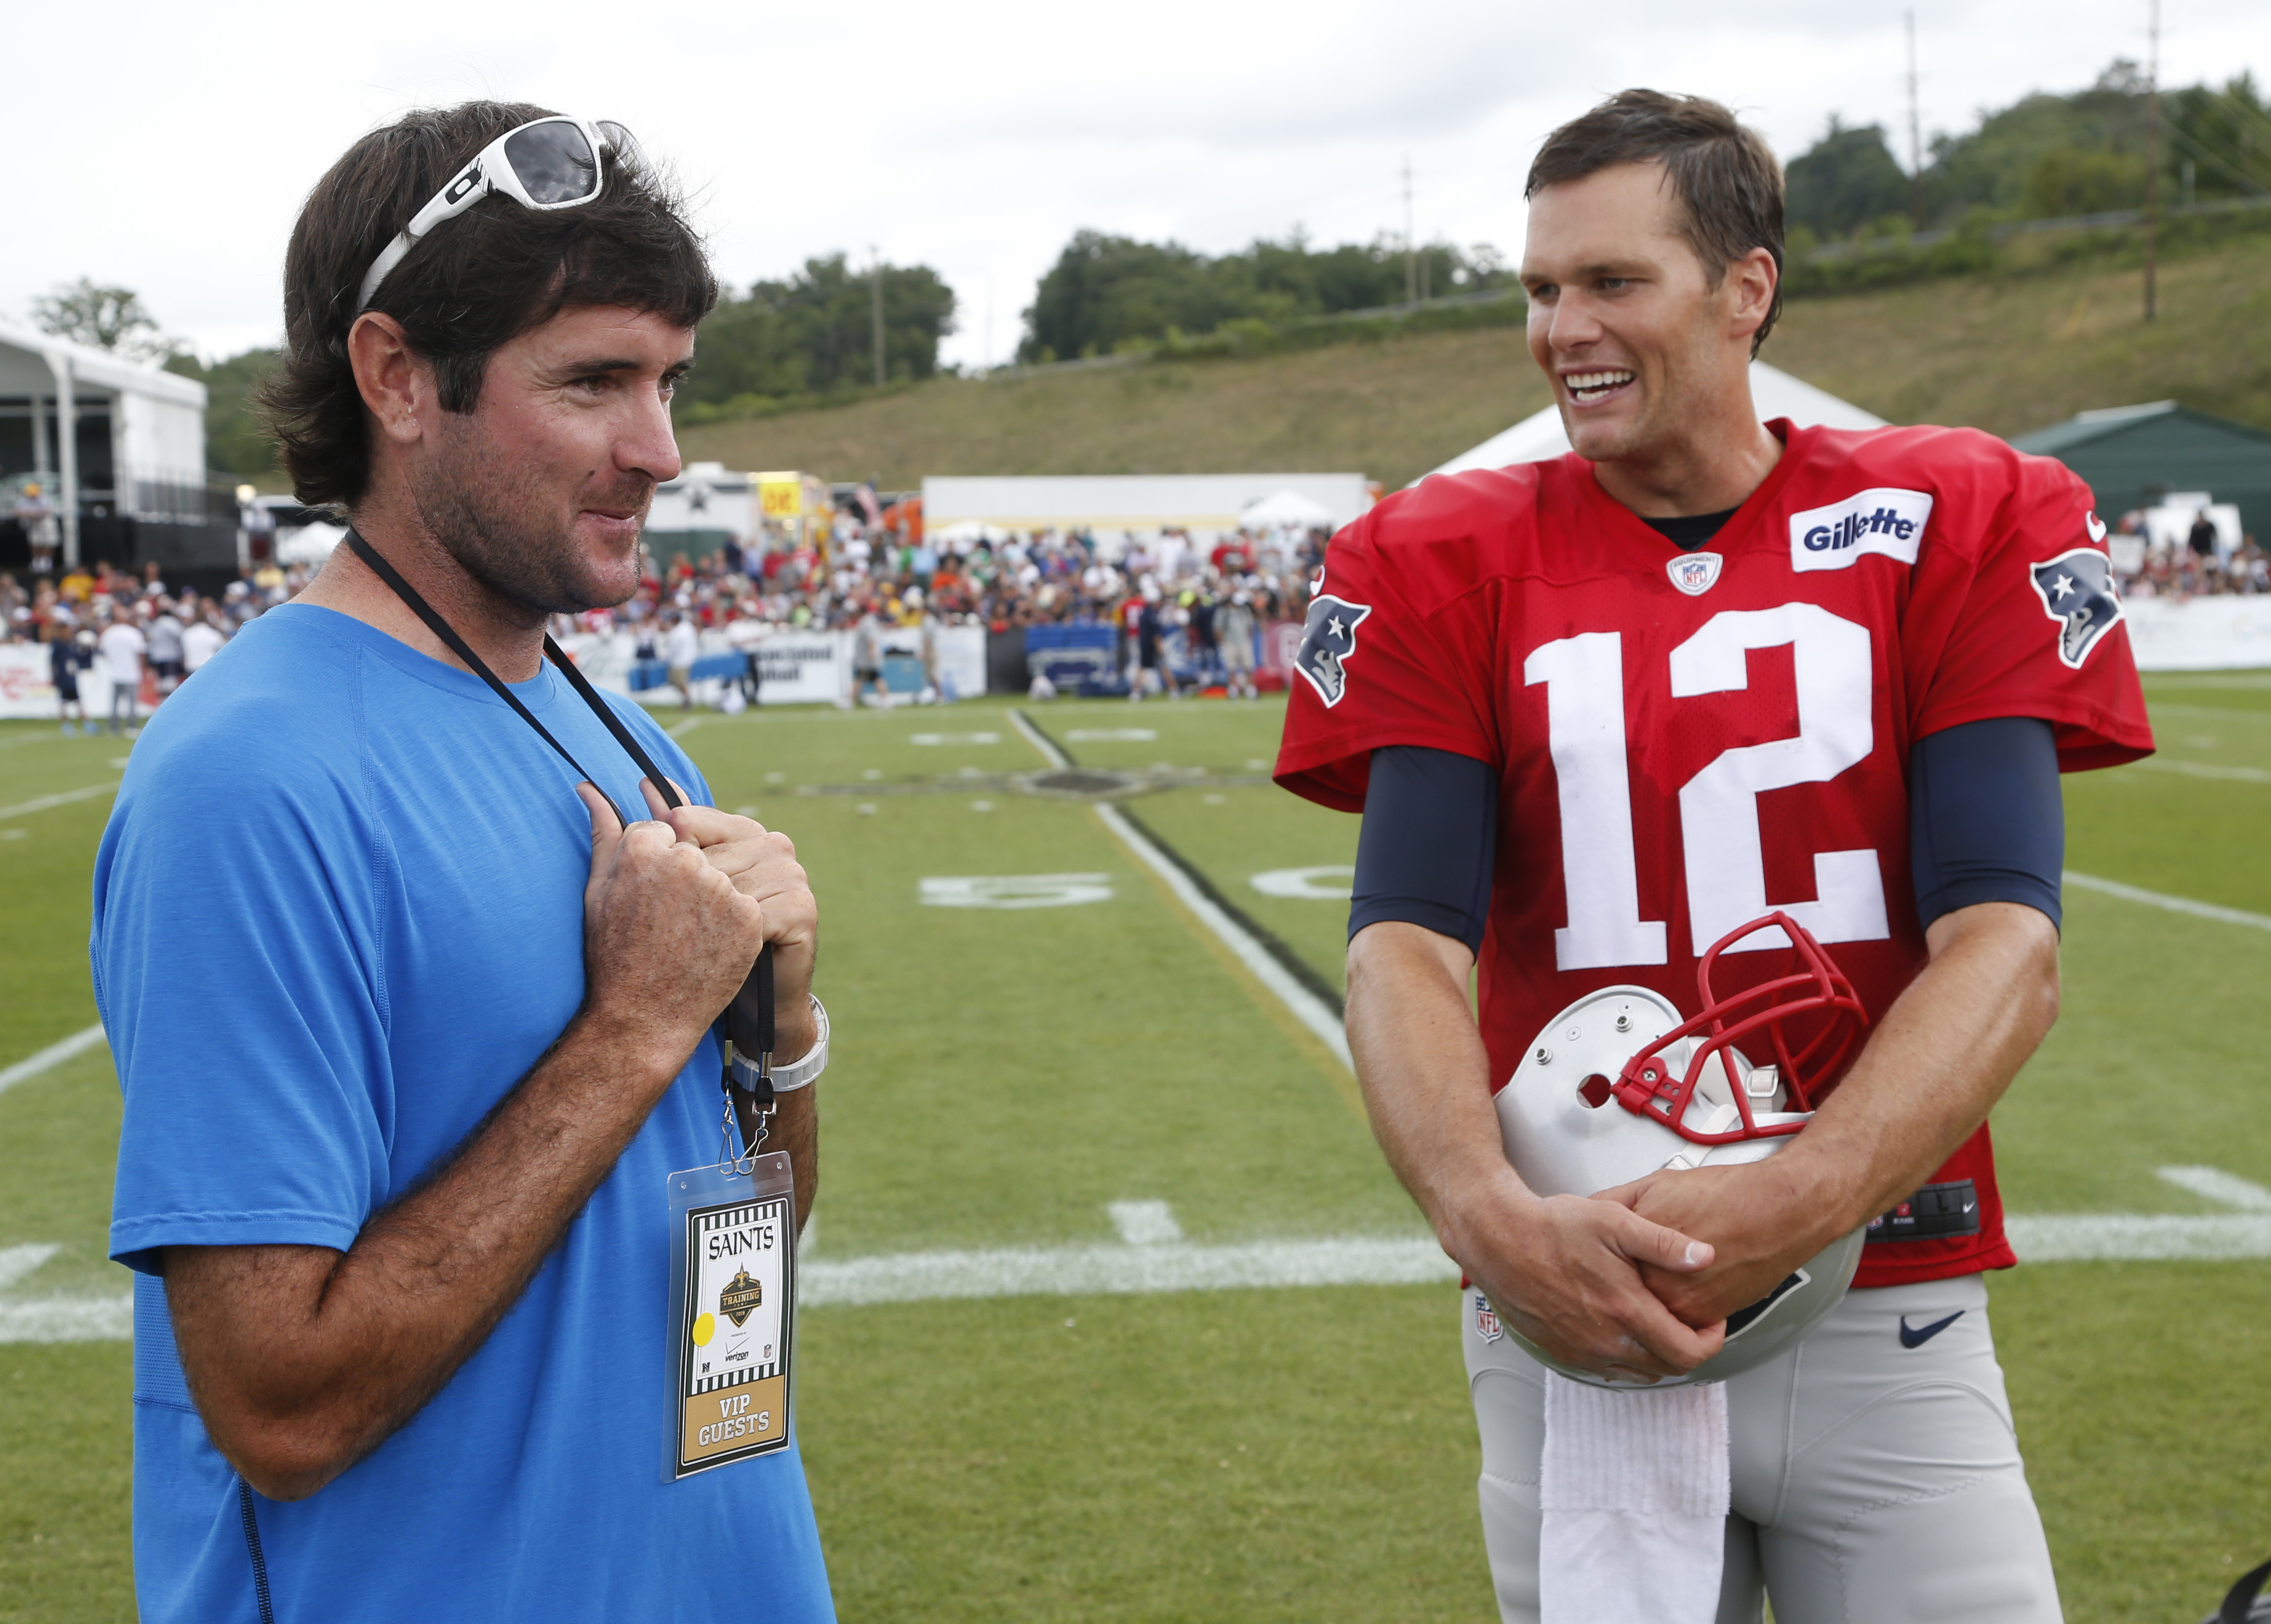 New England Patriots quarterback Tom Brady (12) talks with pro golfer Bubba Watson after a joint practice between the Patriots and New Orleans Saints at the Saint's NFL football training camp in White Sulphur Springs, W.Va., Thursday, Aug. 20, 2015.  (AP